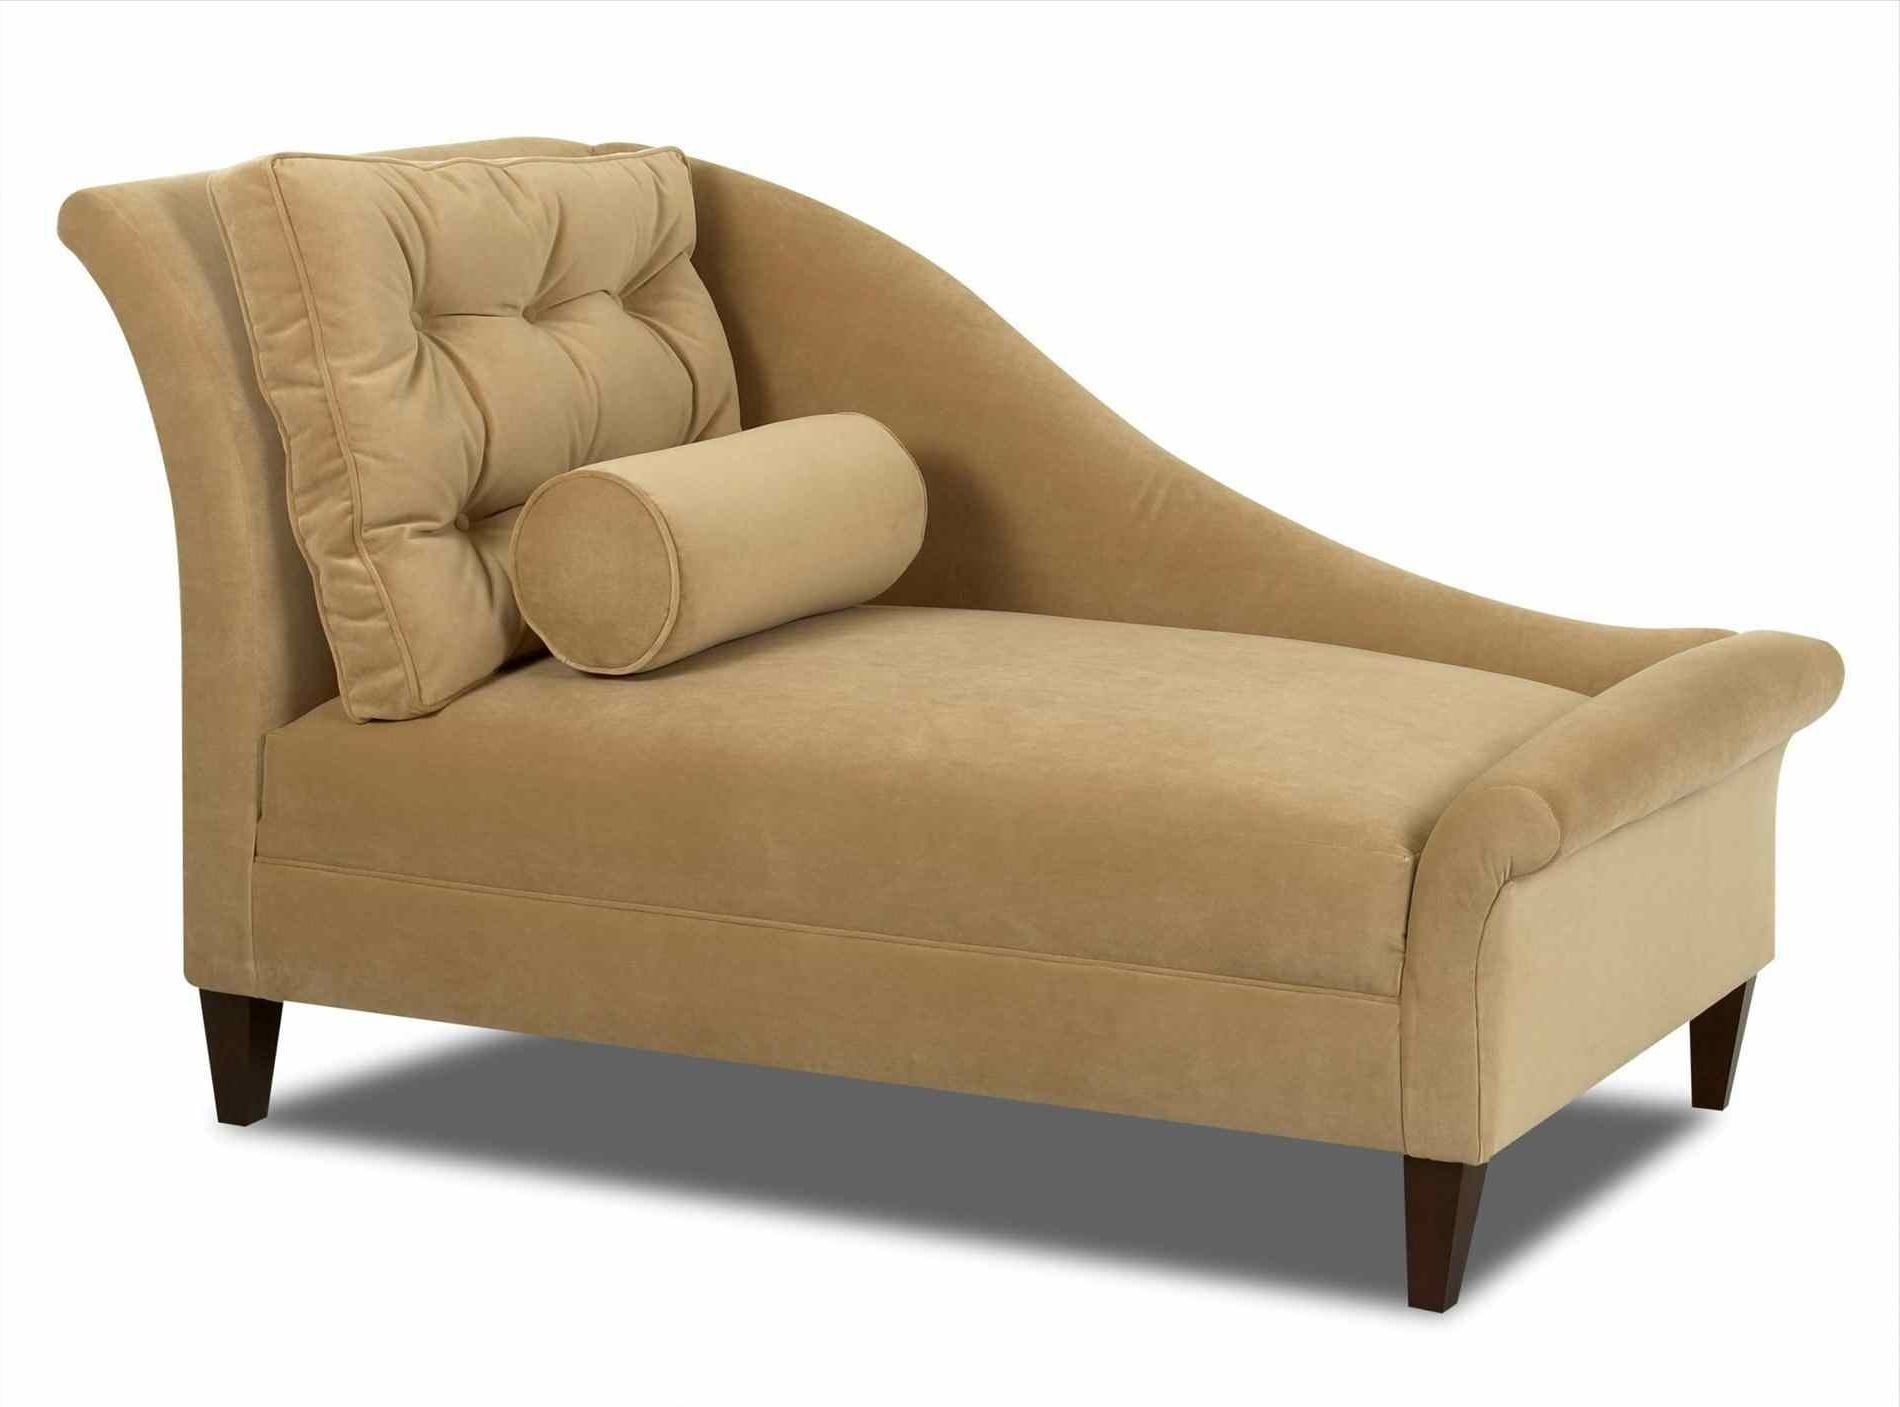 Well Known Chaise Lounge Chairs With Arms In Lounge Chair : Sofa Chaise Lounge Chair With Arms Nice Home Design (View 15 of 15)